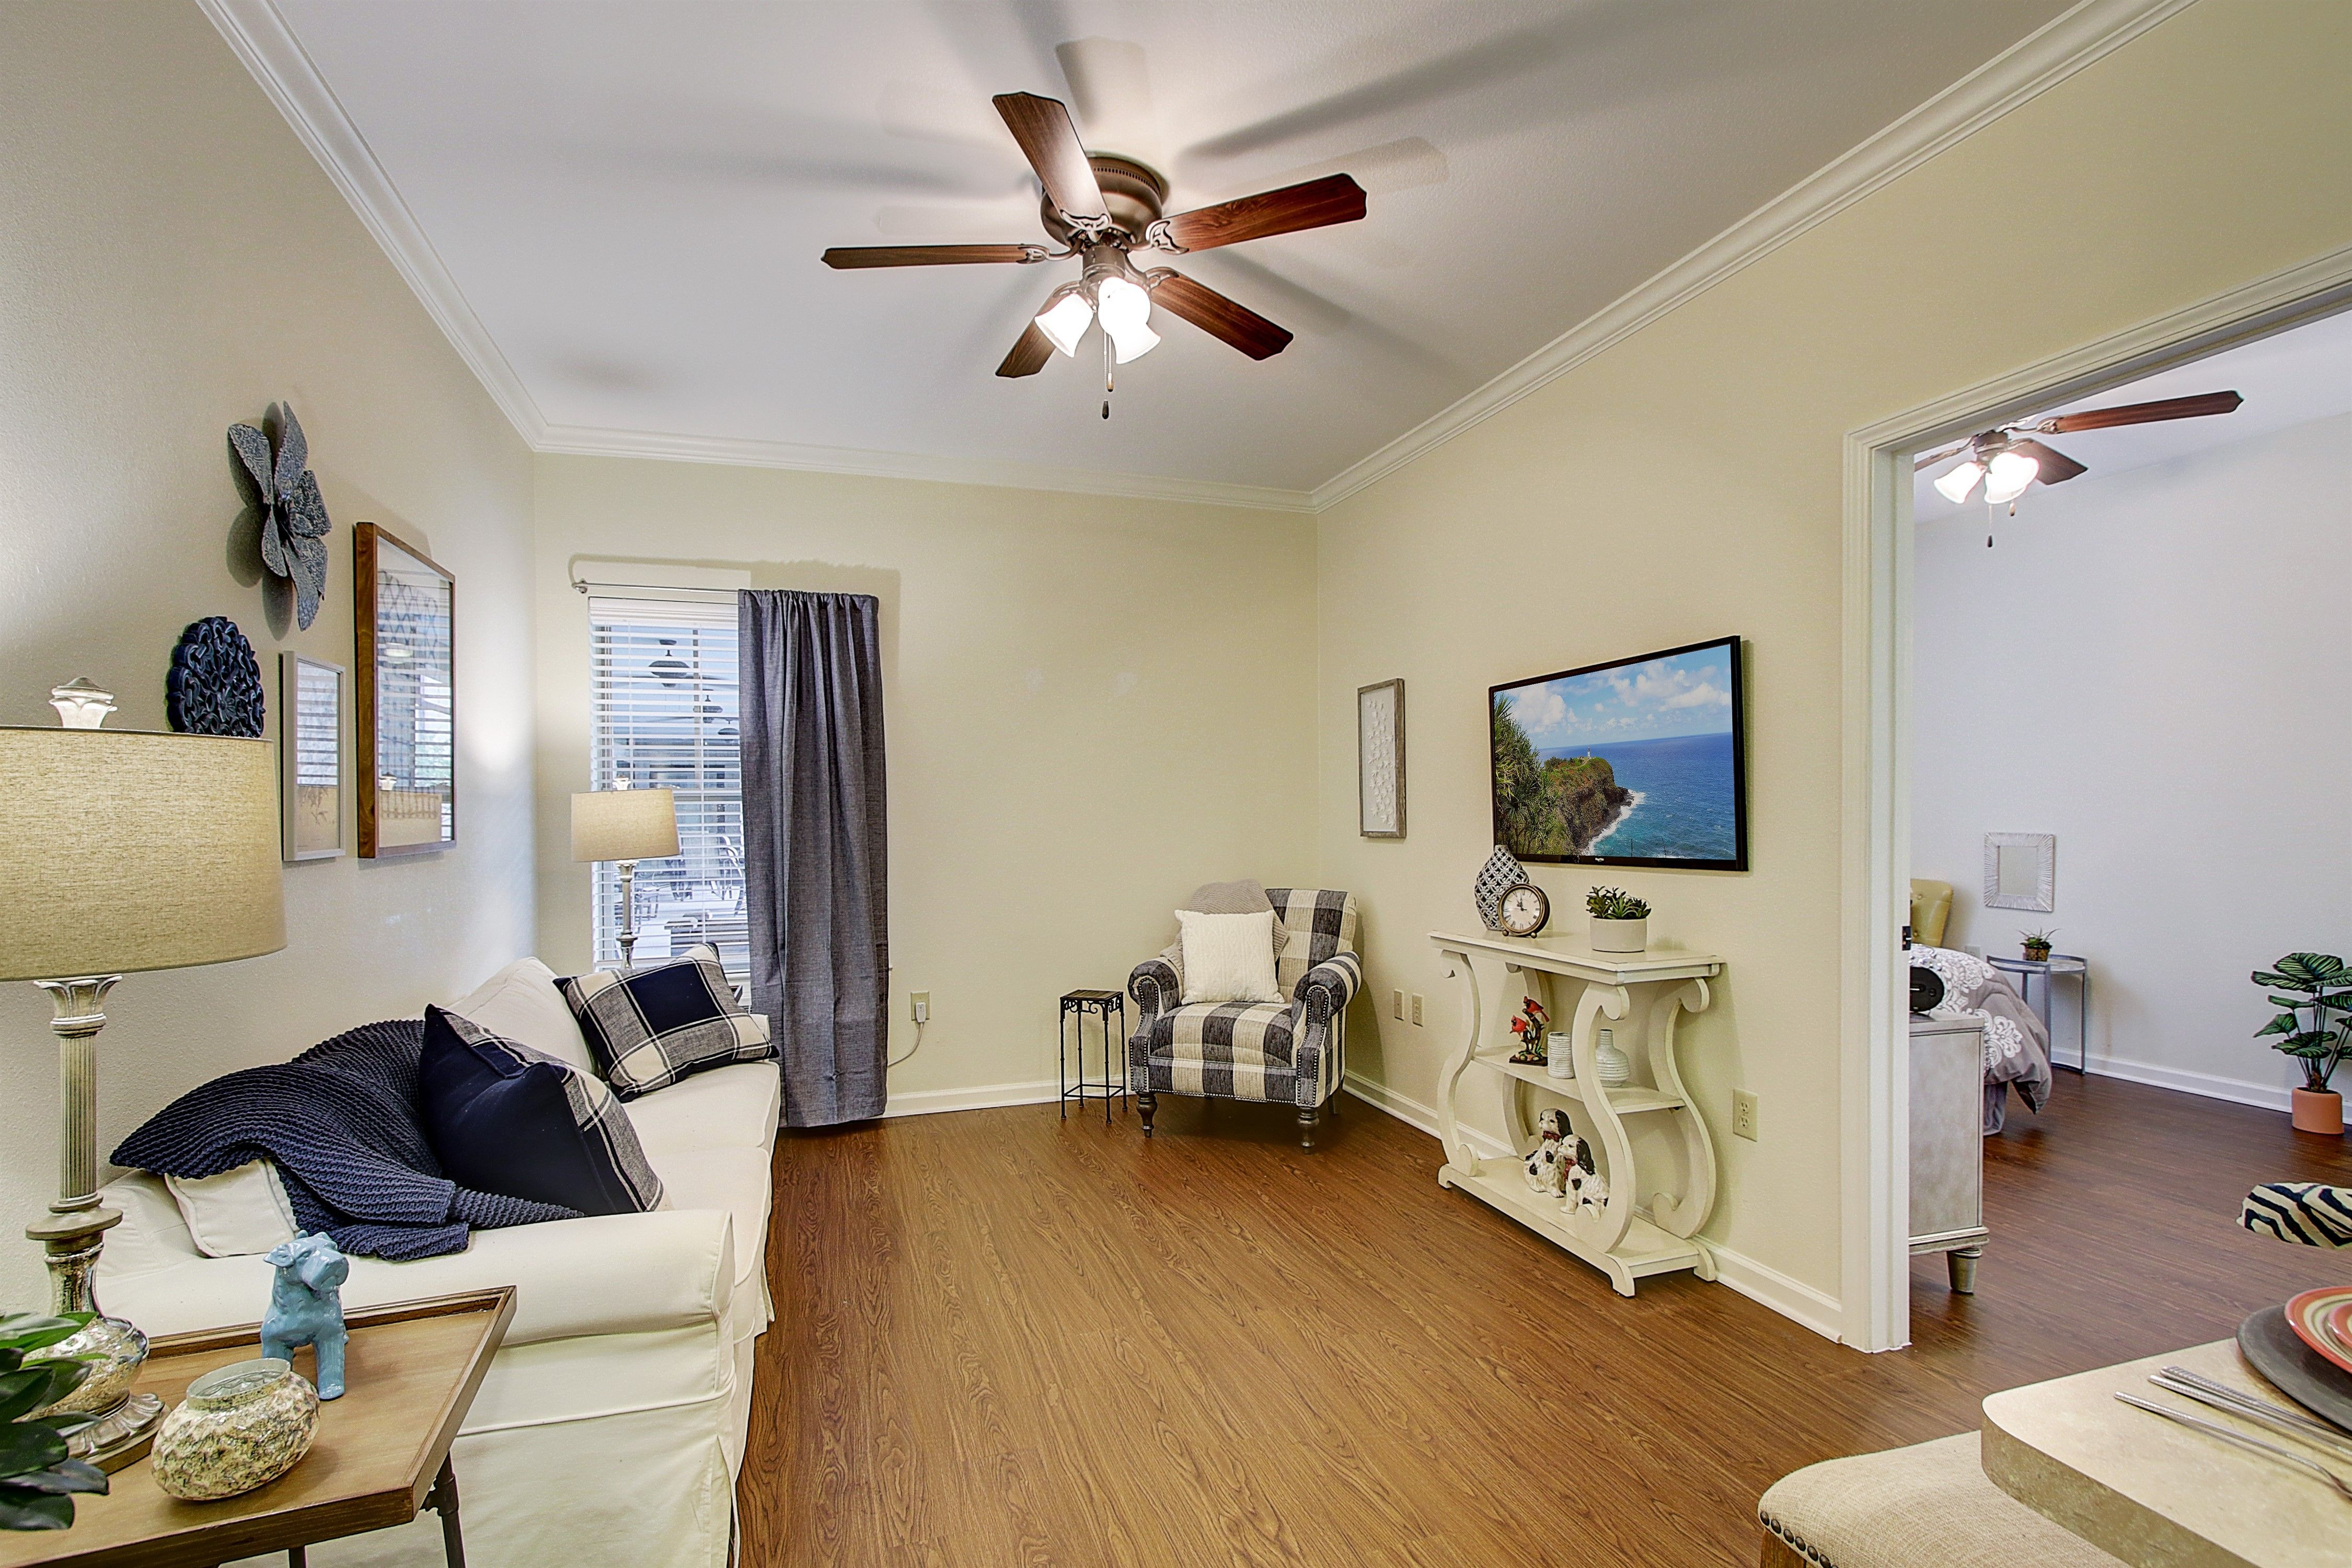 Nestled Within The Peaceful Setting Of Our Beautiful Community Is A Place Where Our Assisted Living And Me Senior Living Floor To Ceiling Windows Cozy Interior